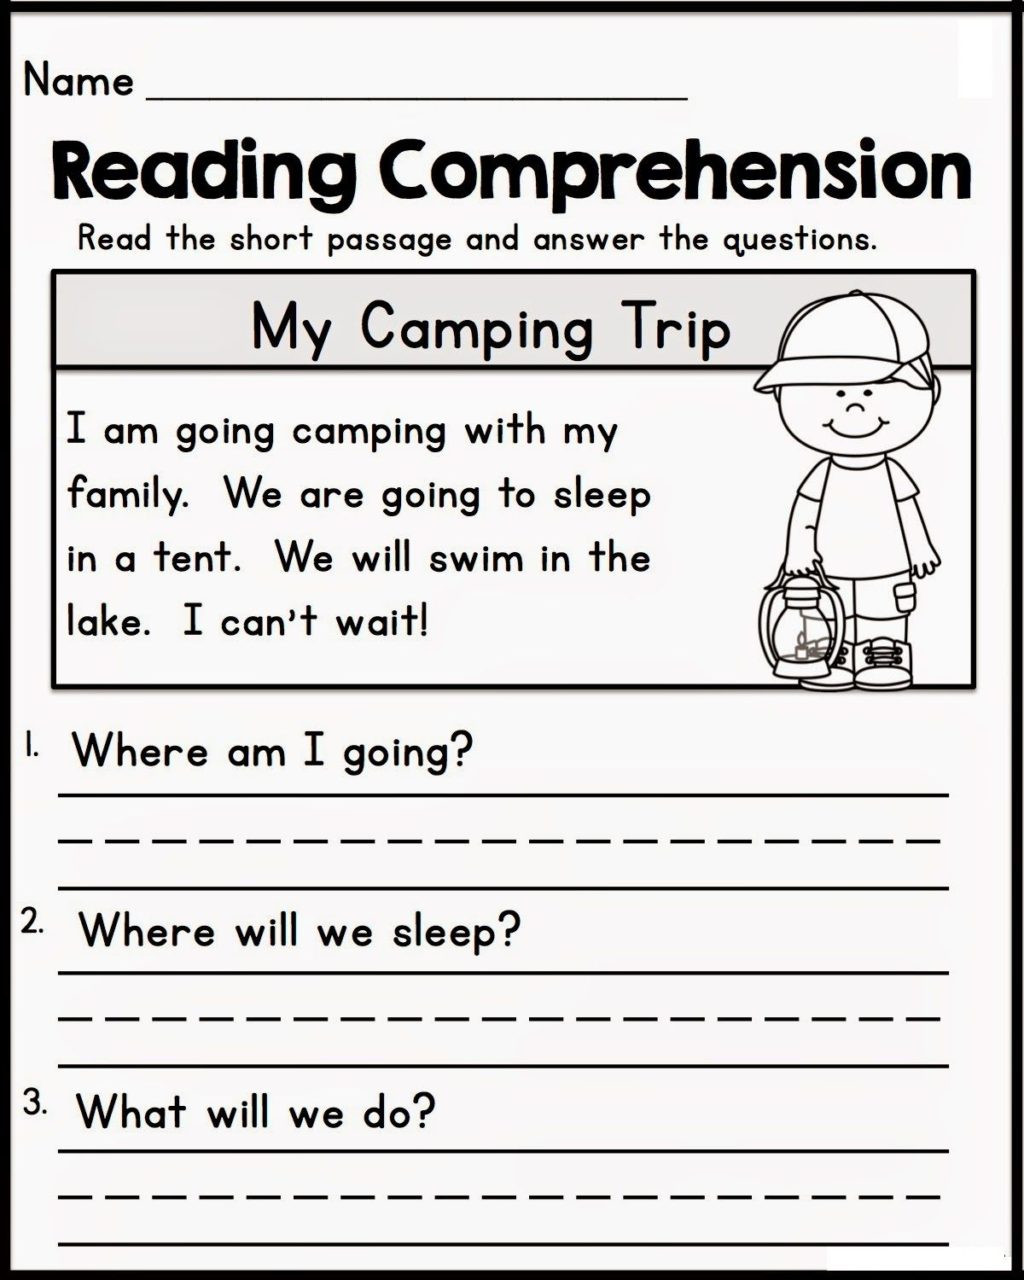 Timeline Worksheets for 1st Grade Worksheet Remarkable 1st Grade Reading Sheets Worksheet